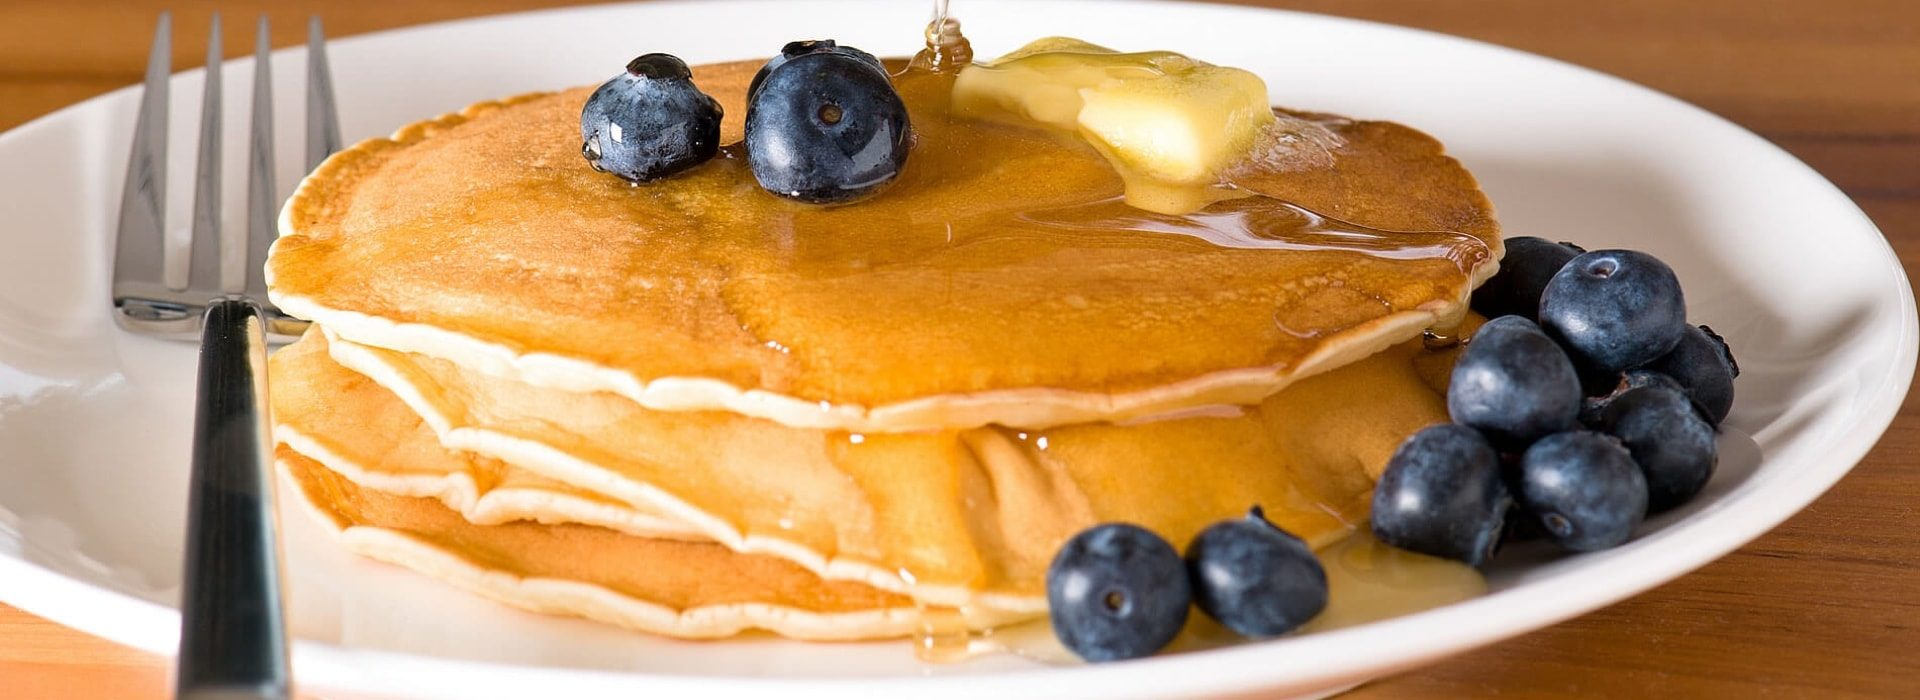 Close up view of pancakes with blueberries on top